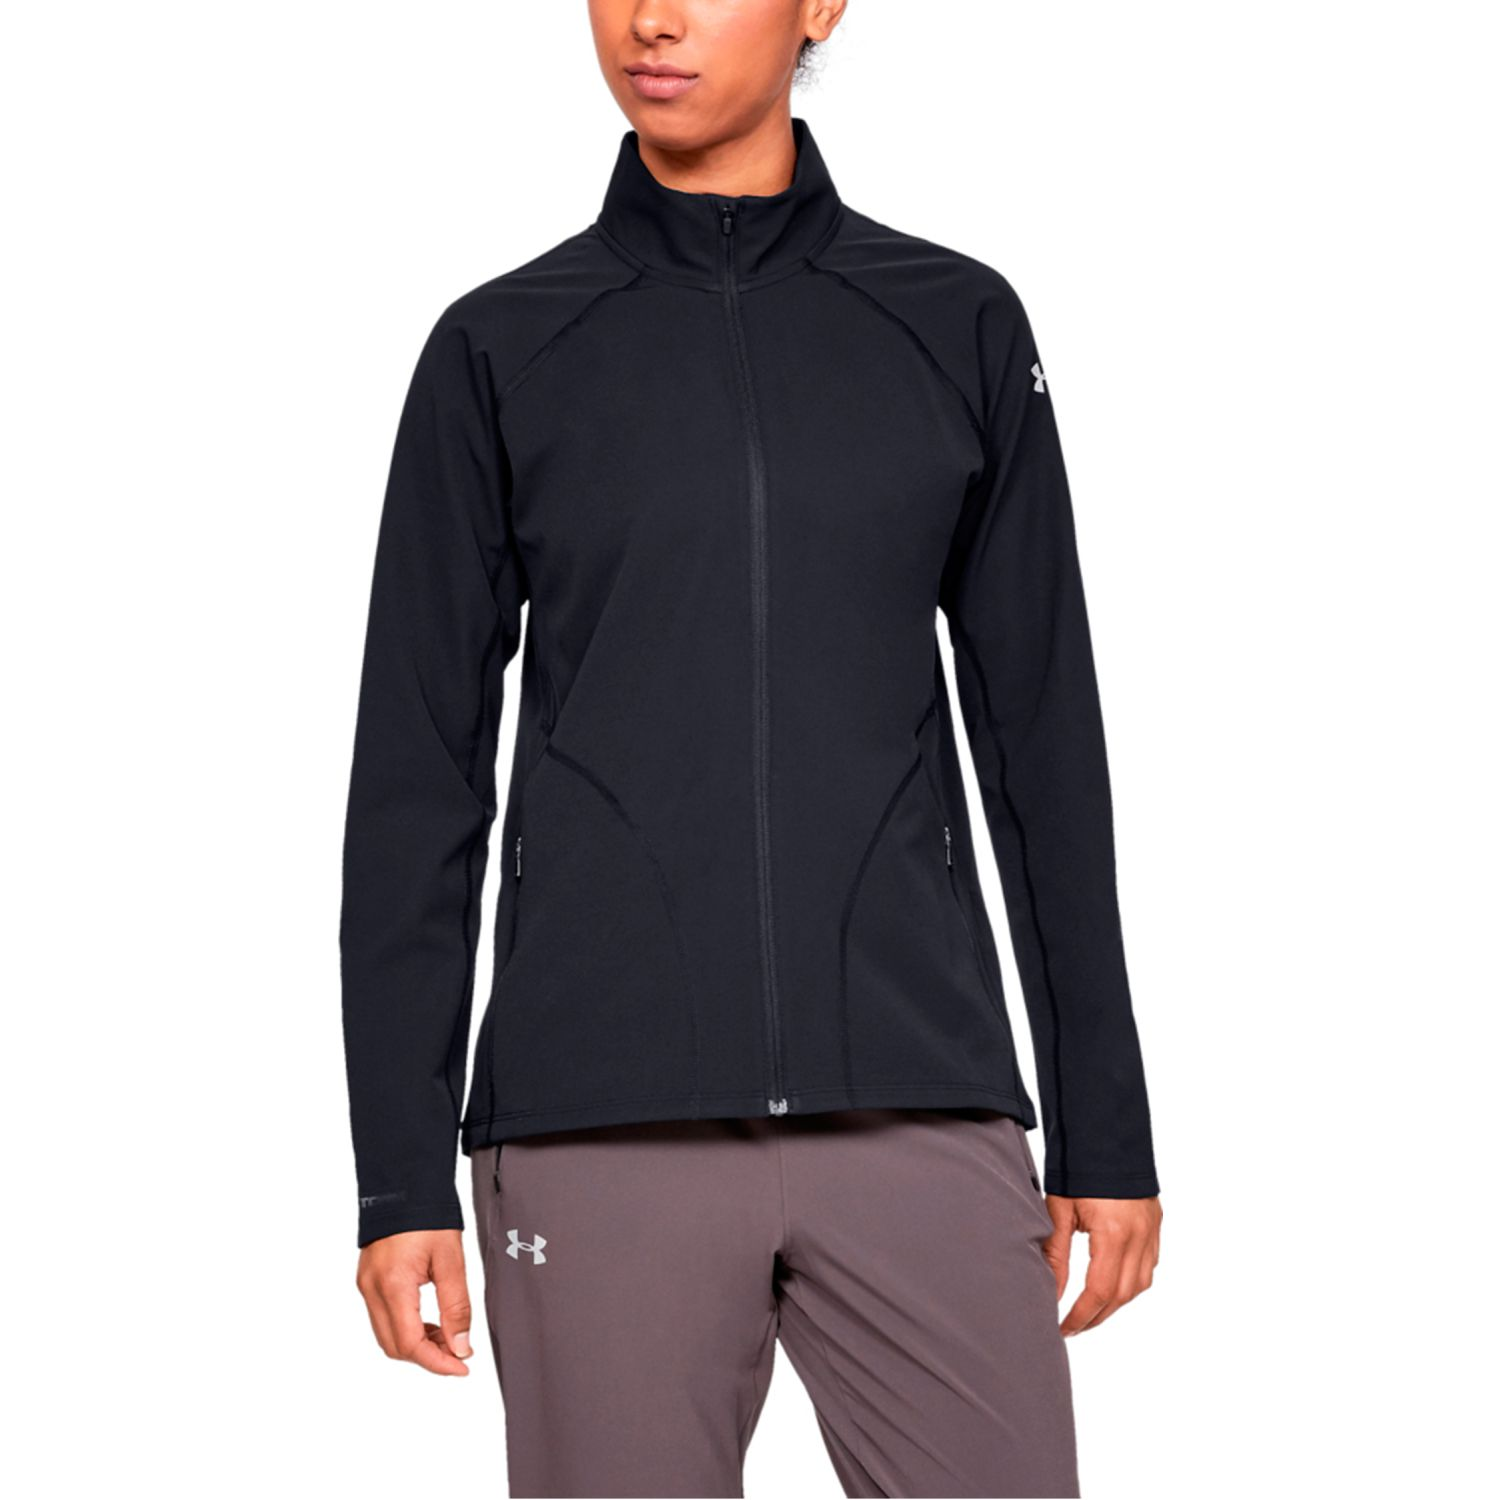 Under Armour storm out & back jacket Negro Viento y Lluvia